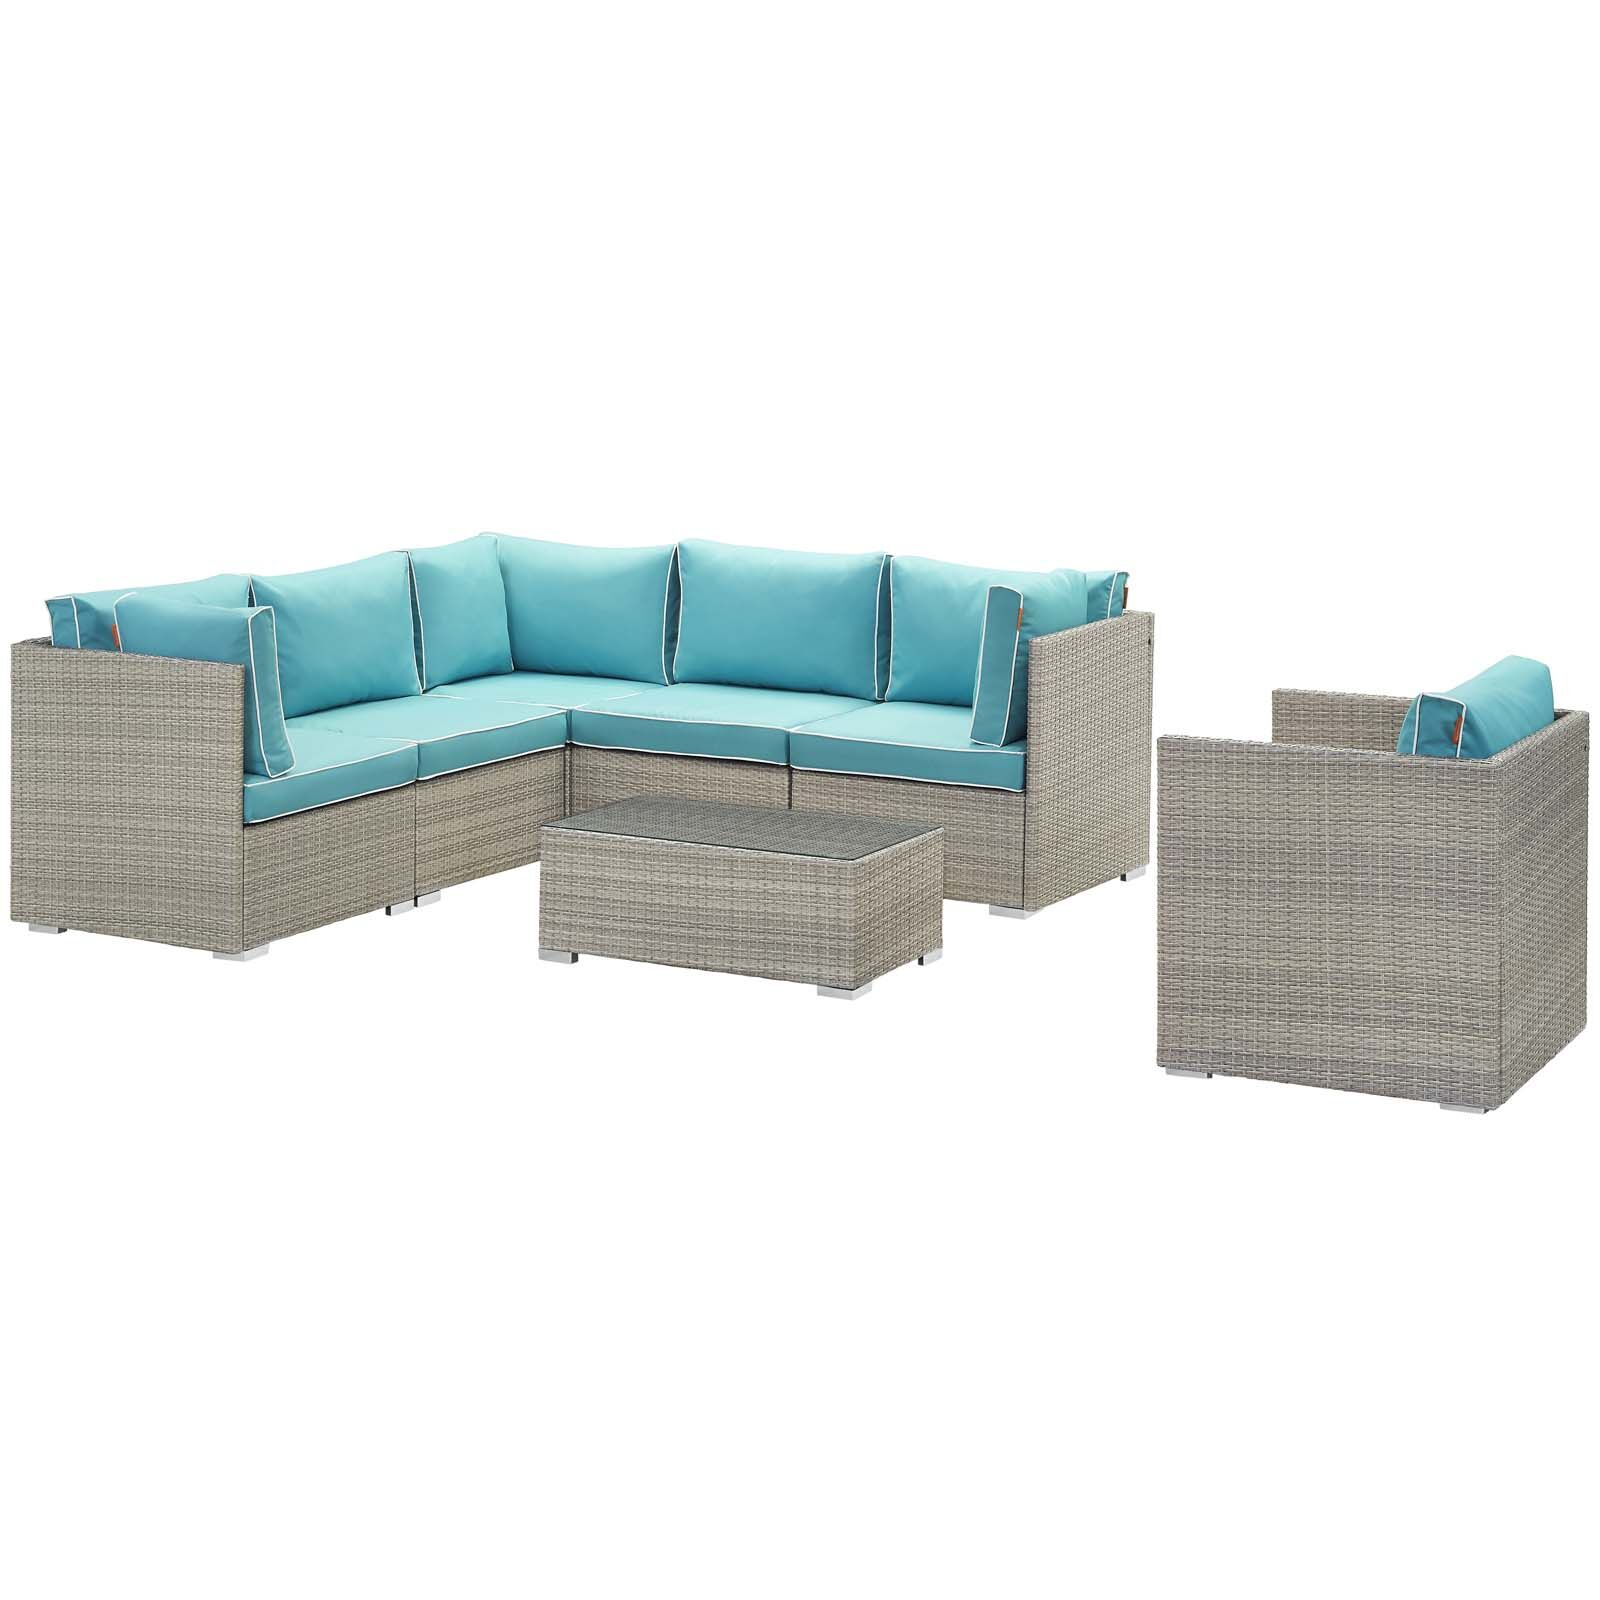 Heinrich 7 Piece Rattan Sectional Set with Cushions Cushion Color: Turquoise